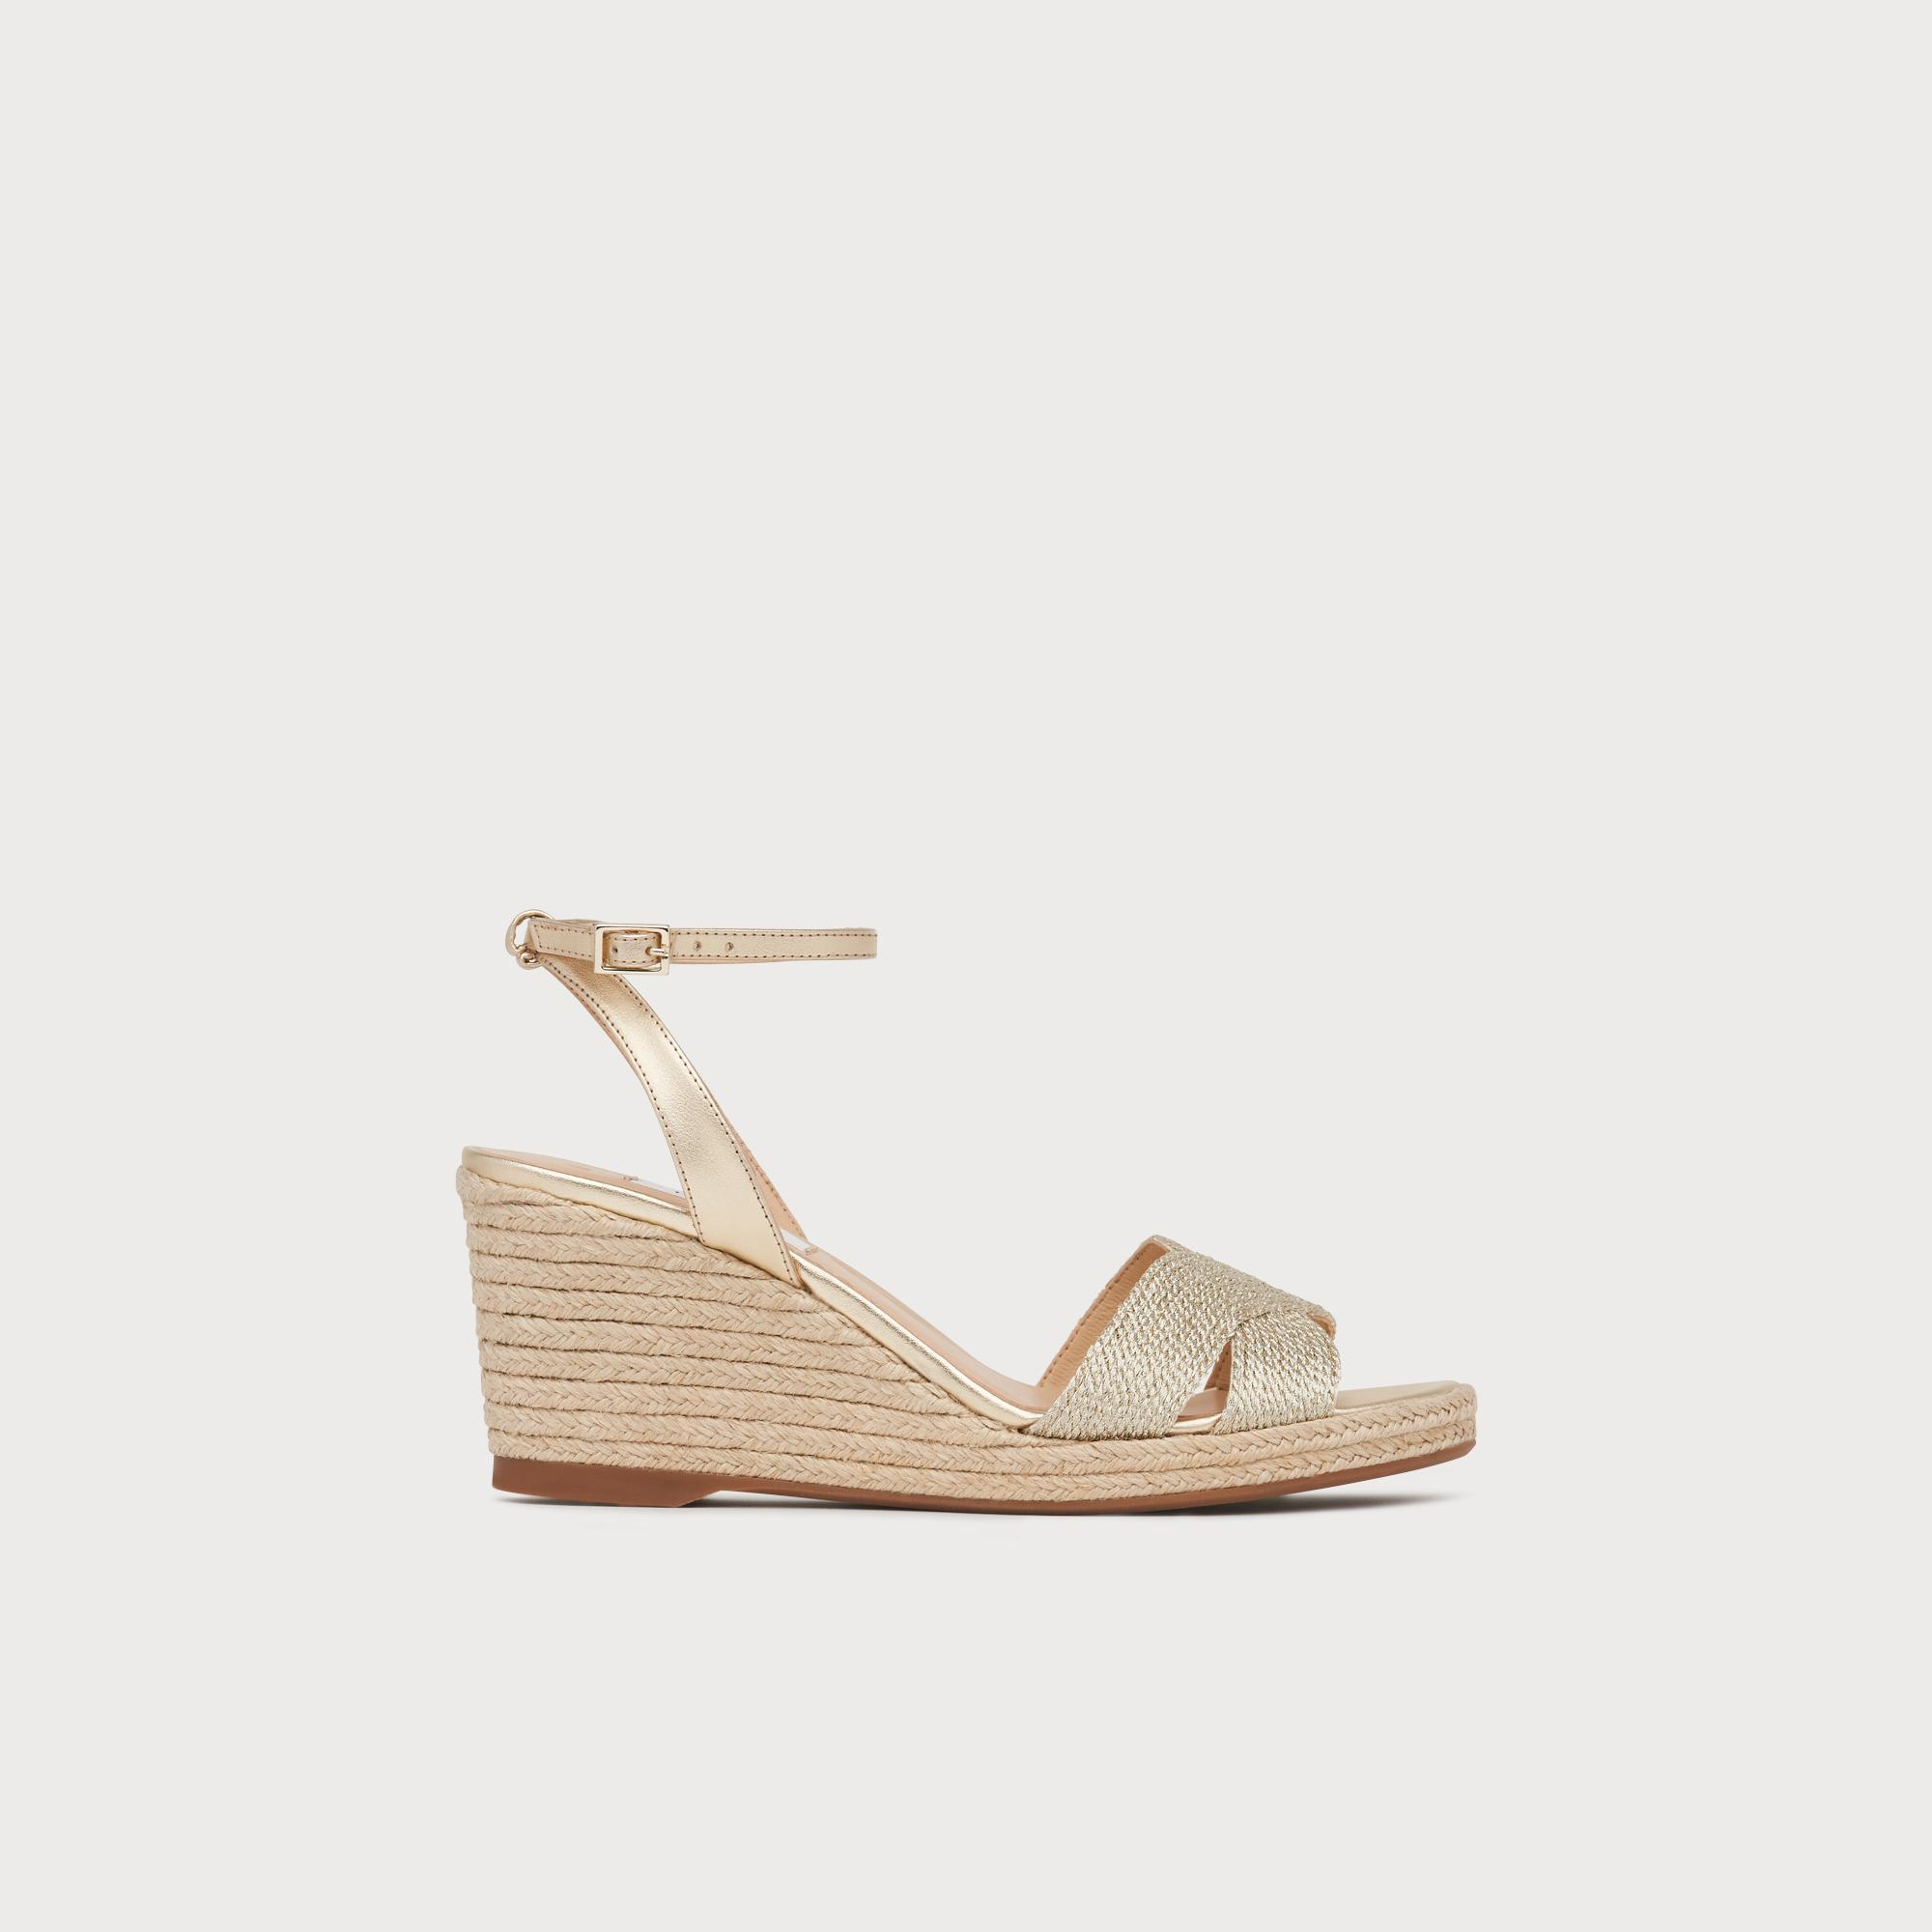 a45946ca9 Mabella Gold Rope Wedge Sandals